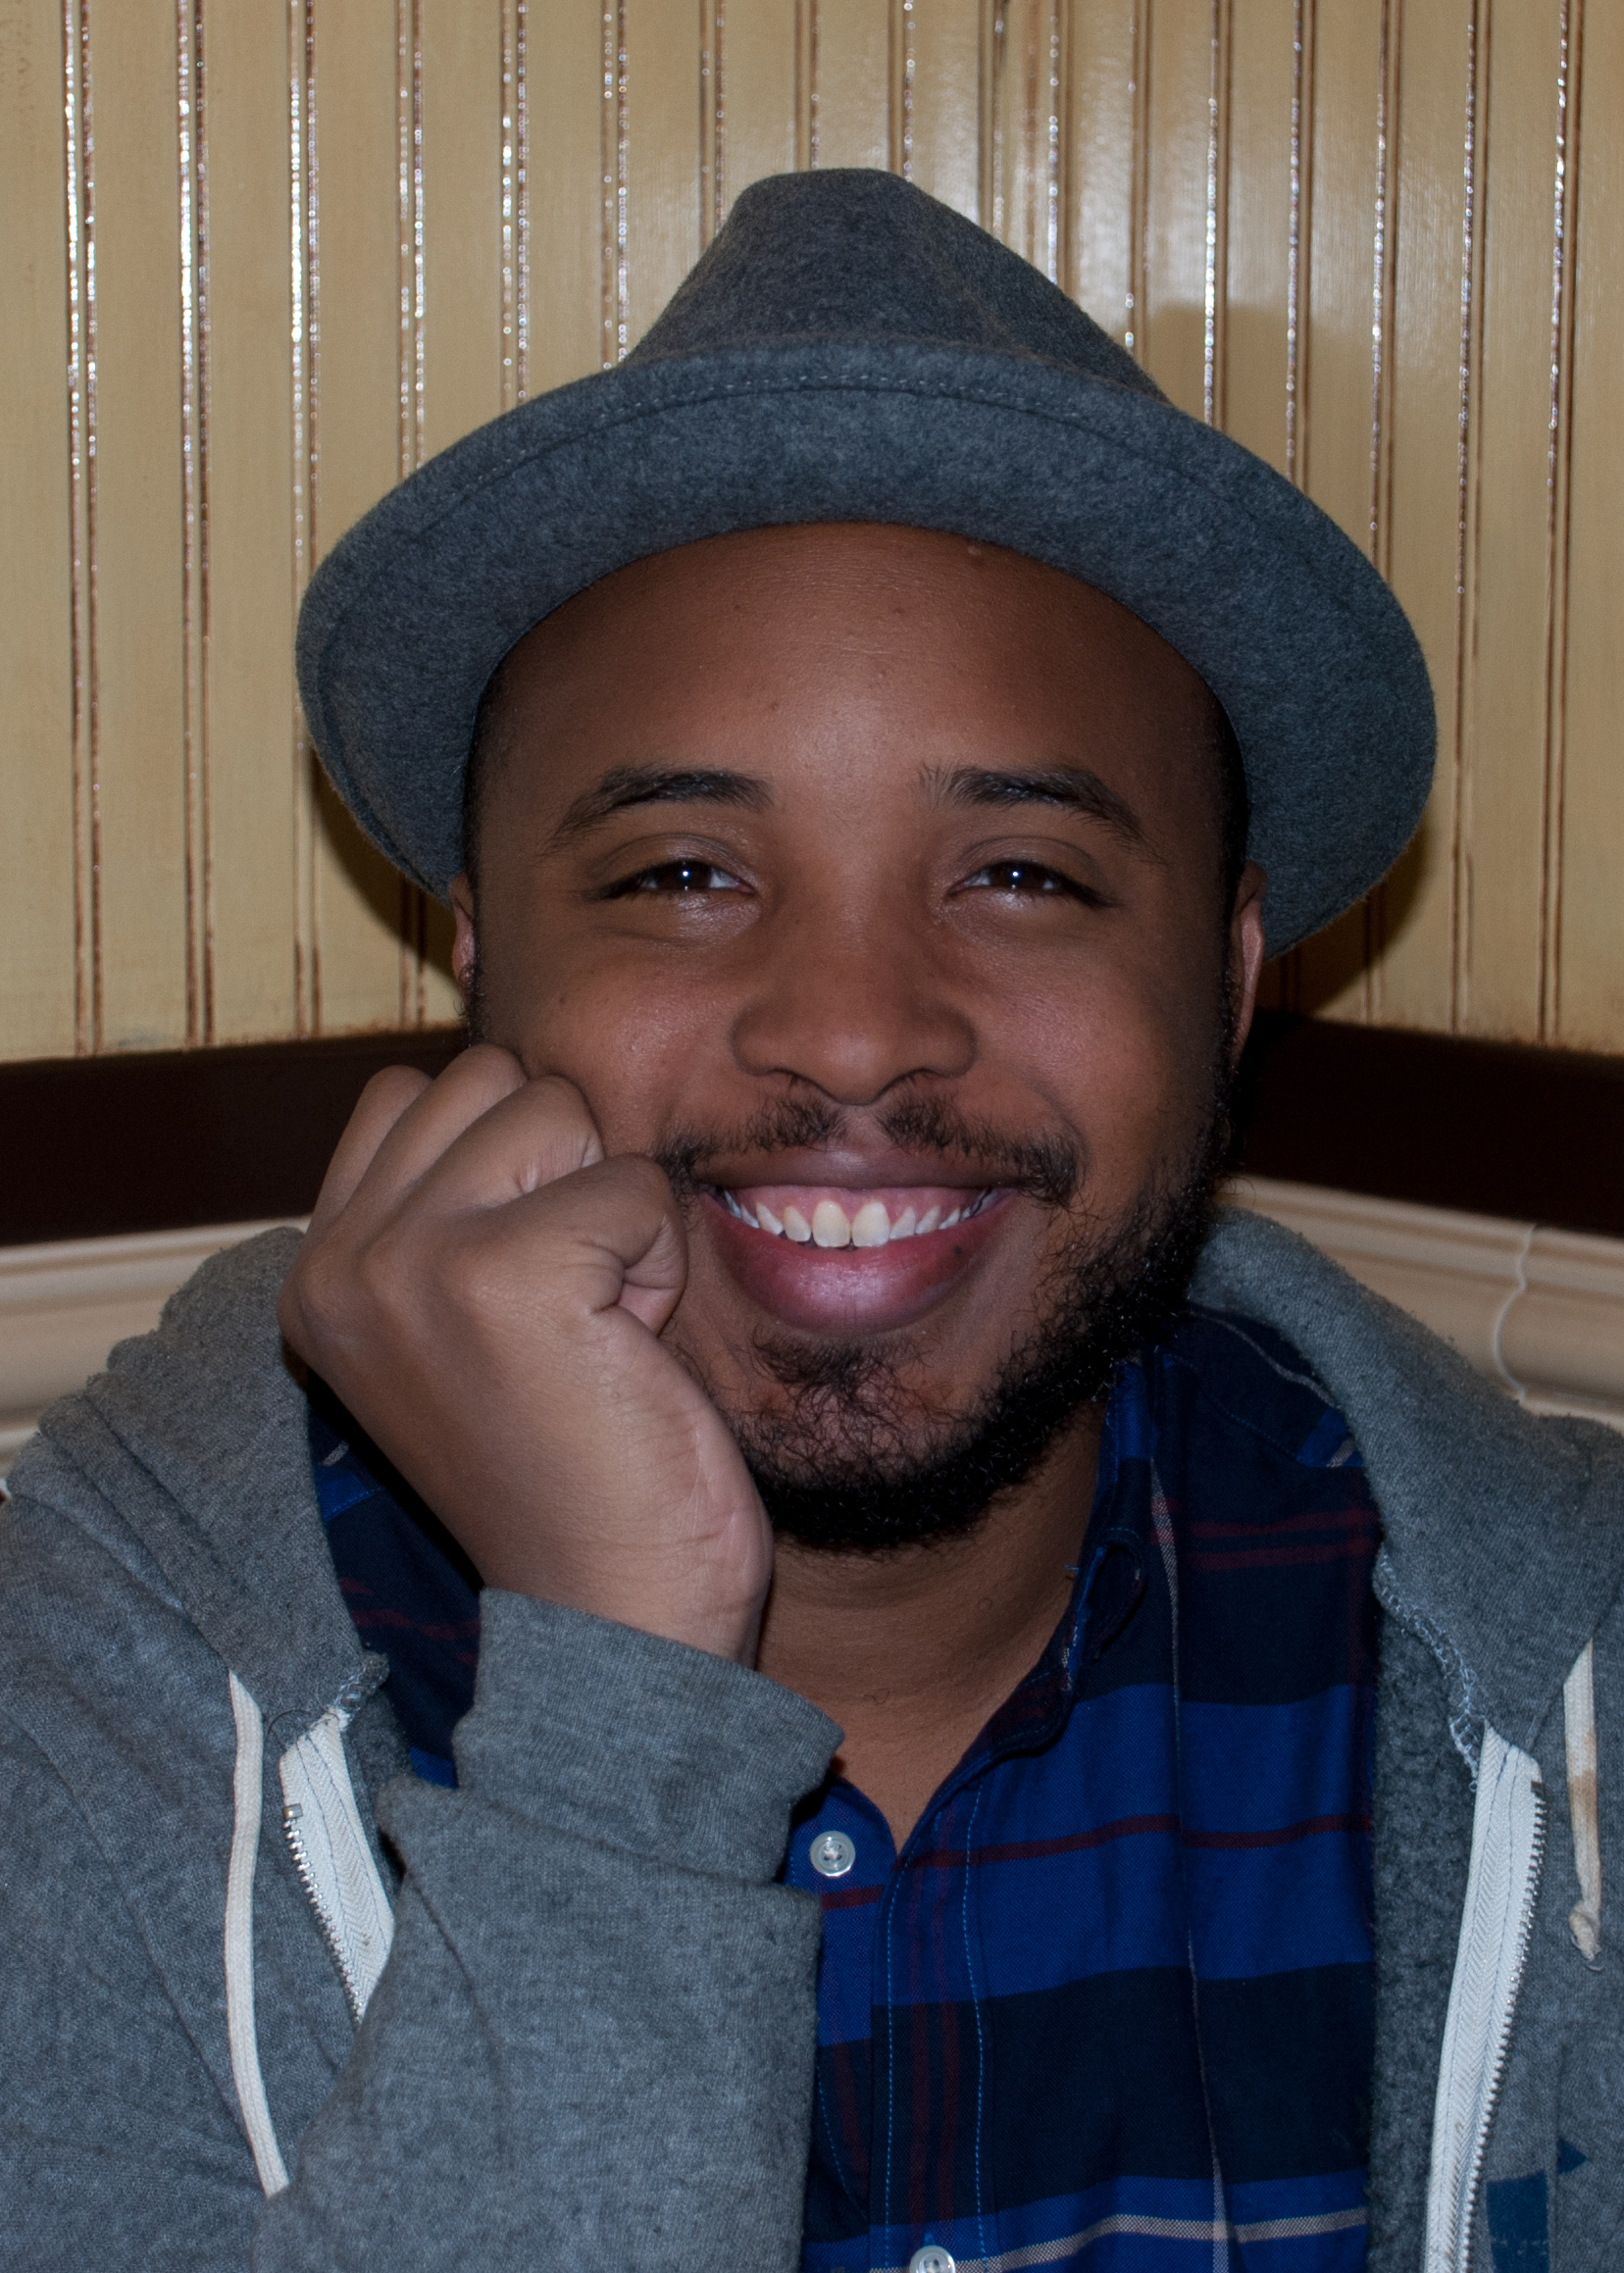 Caption: Justin Simien, San Francisco, CA 10/17/14, Credit: Andrea Chase